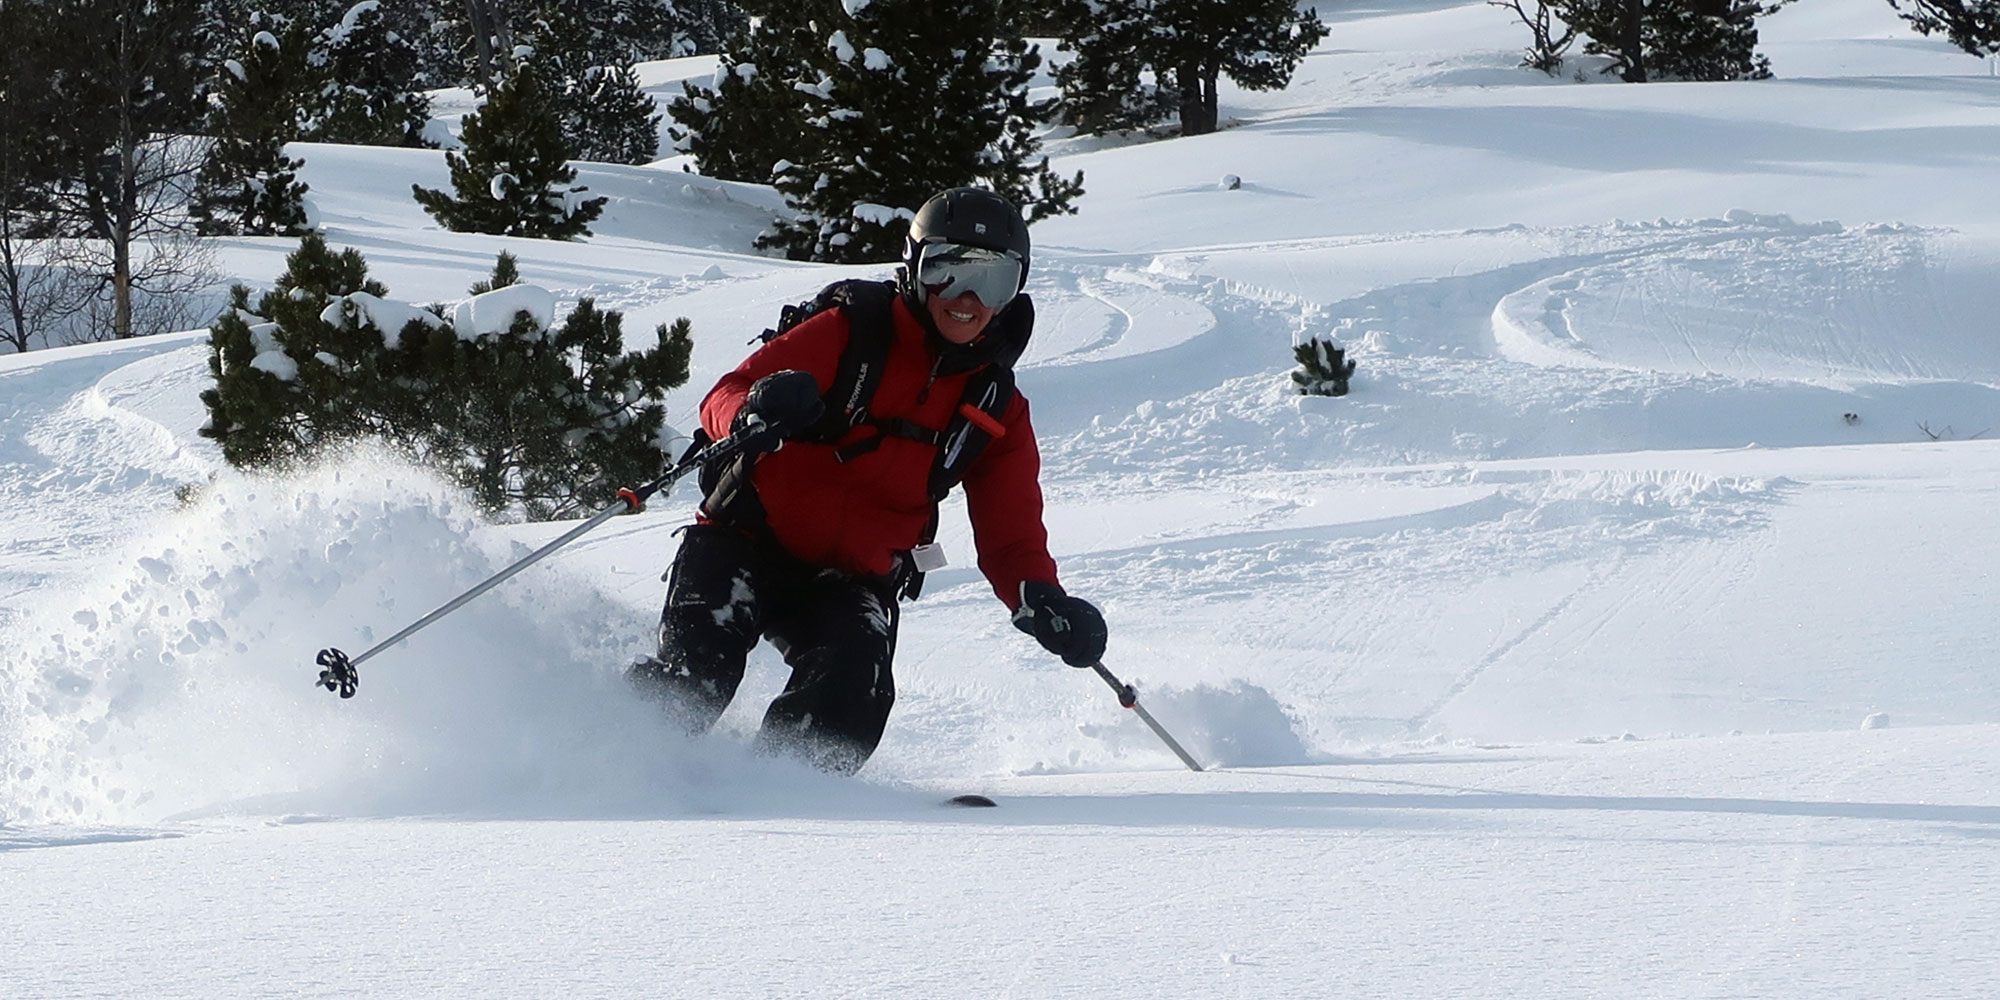 The thrill of off-piste skiing